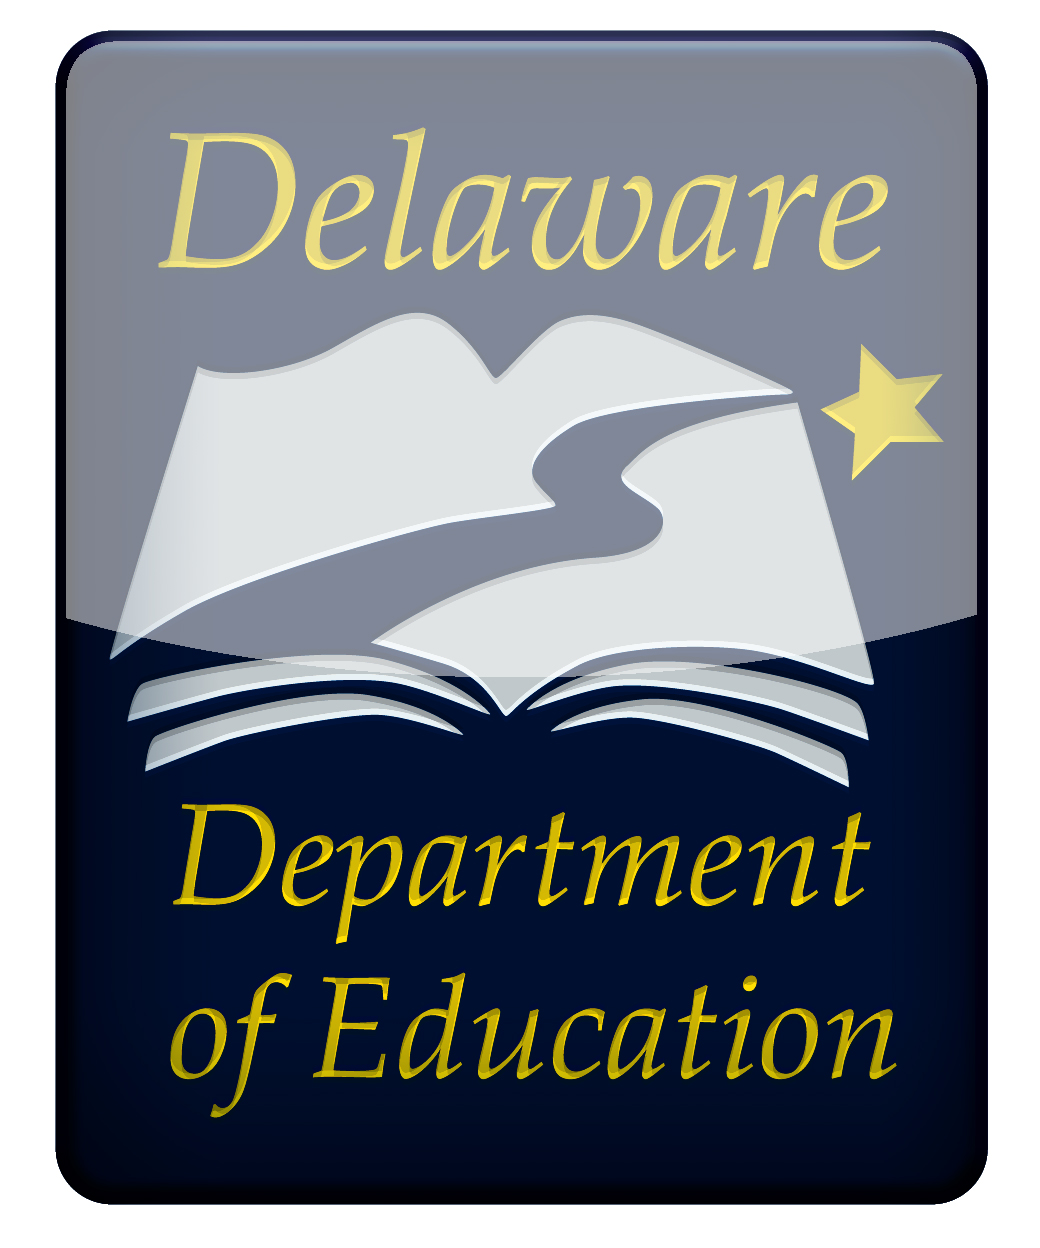 Scholarship Essay Prompts Released For 2015 2016 Delawares